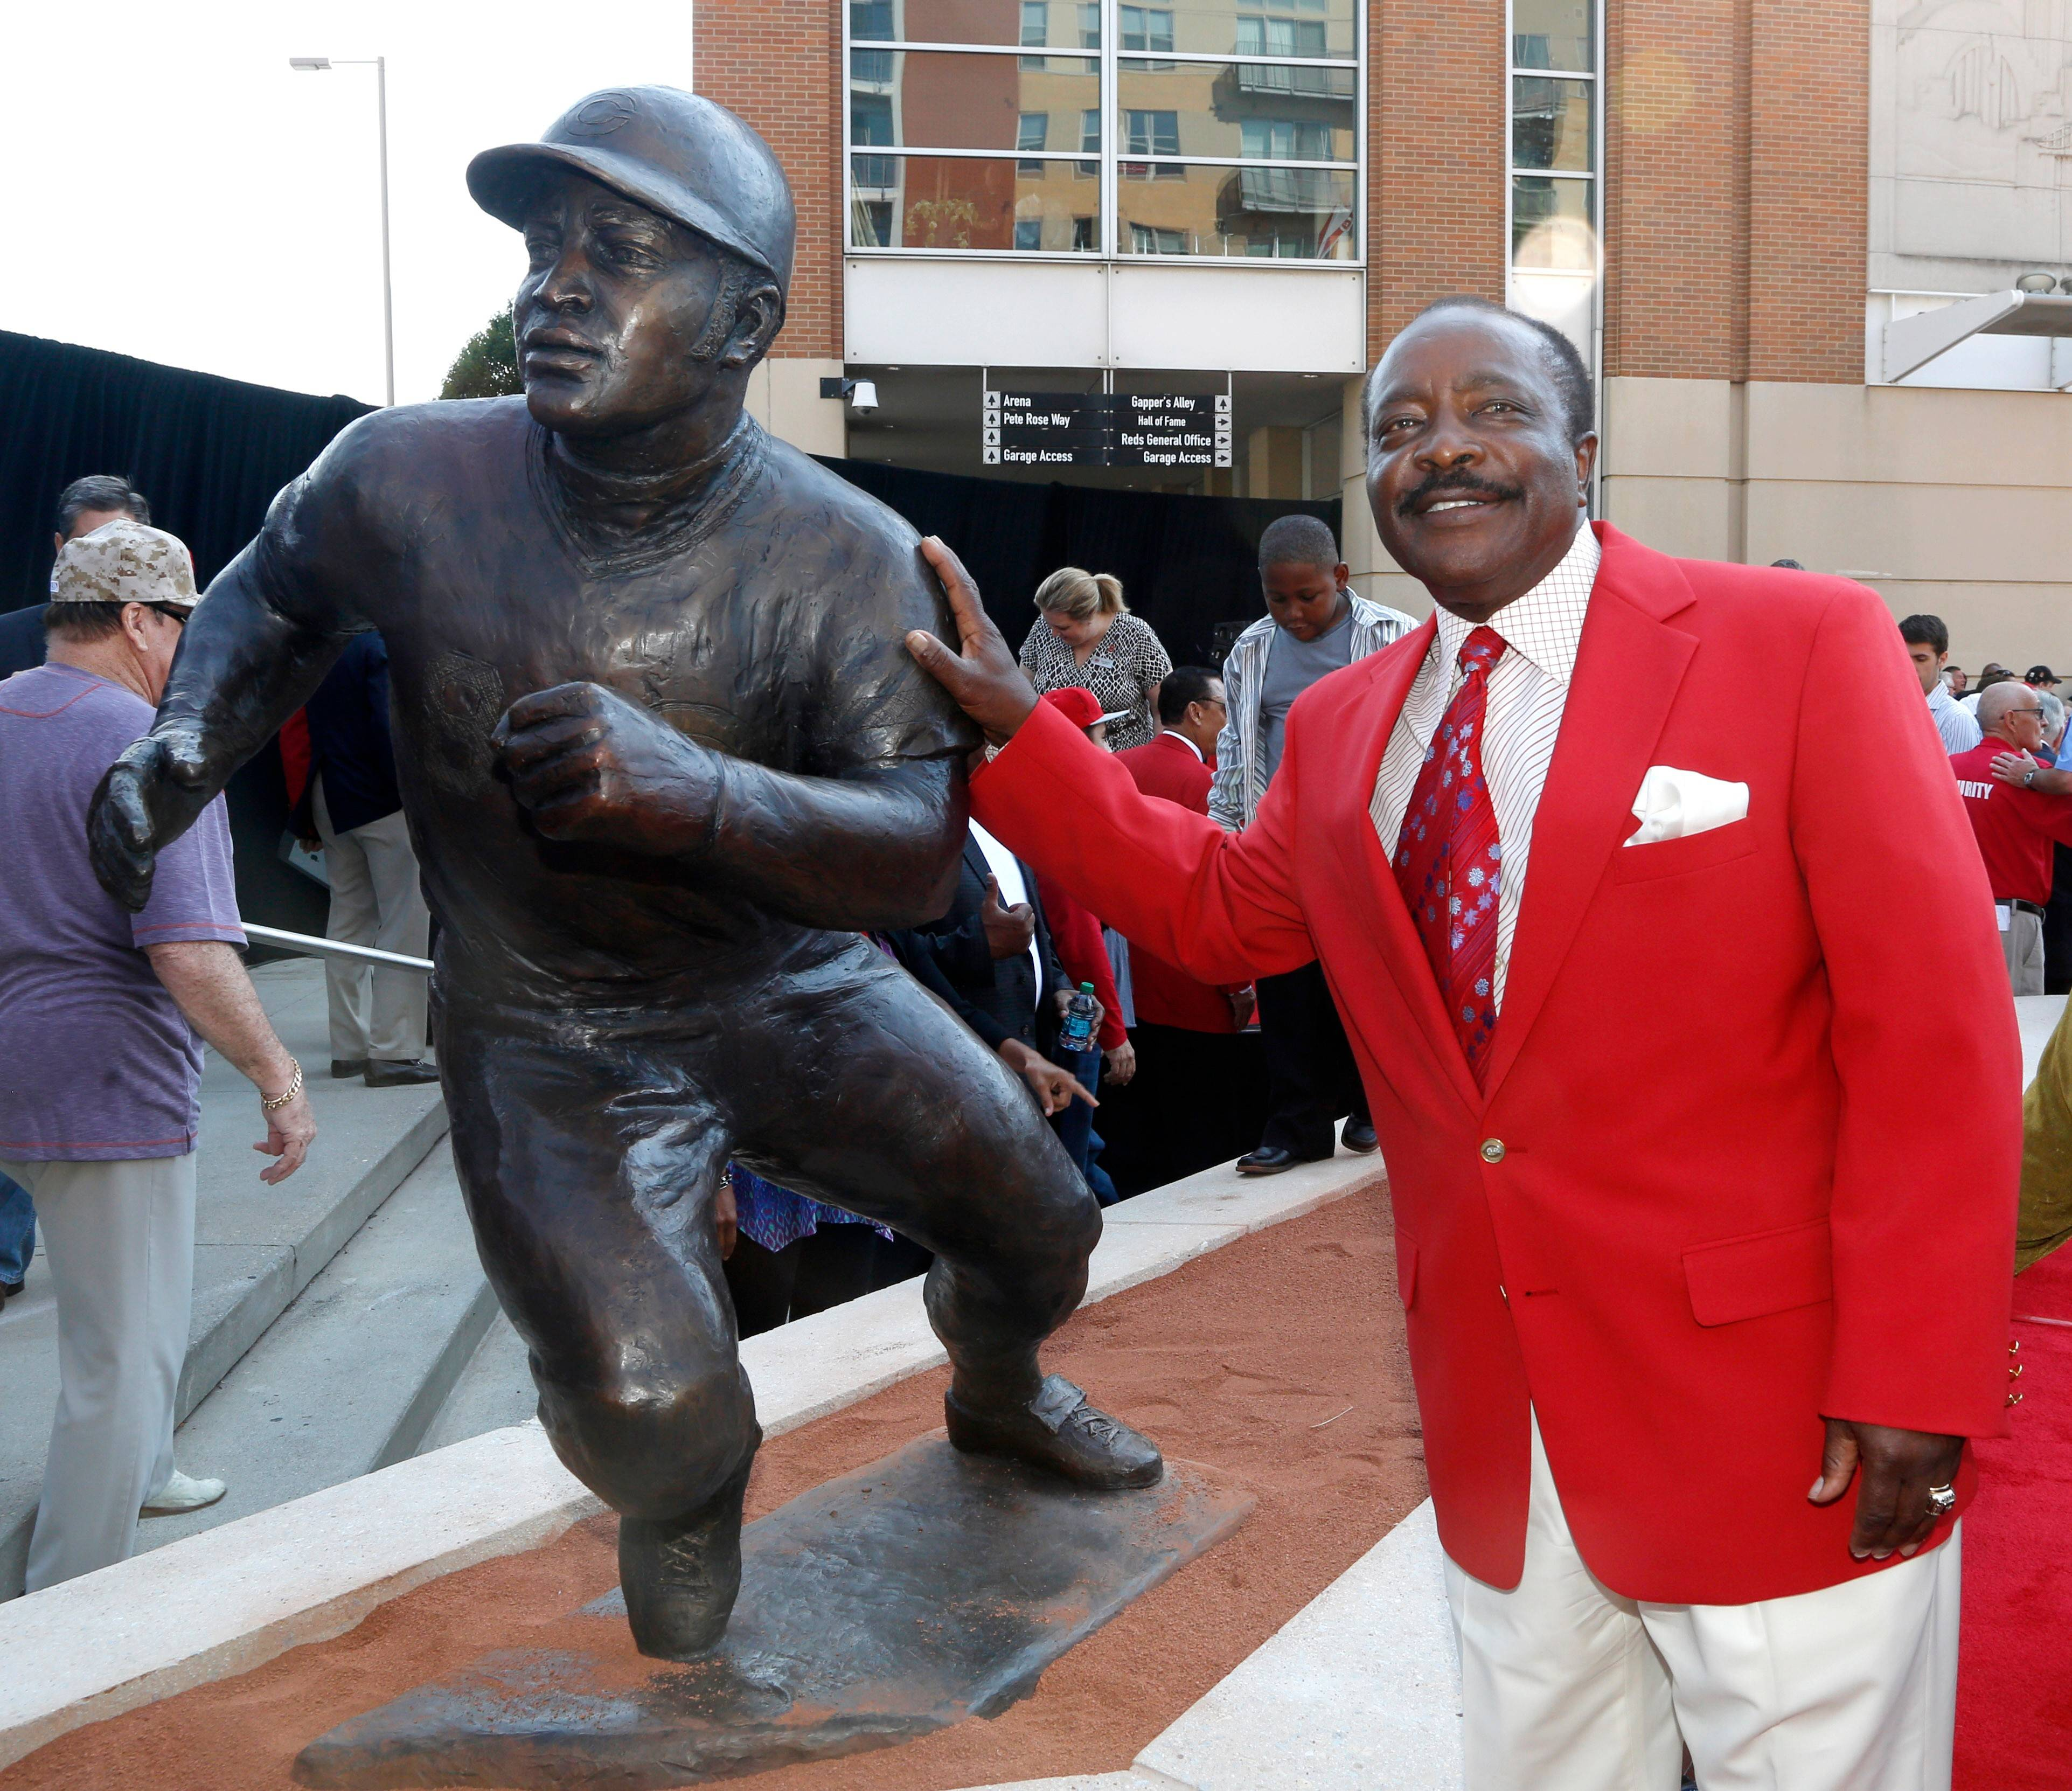 Just before Thanksgiving, Joe Morgan sent a letter to Baseball Hall of Fame voters with a plea that they keep performance enhancers far from Cooperstown.